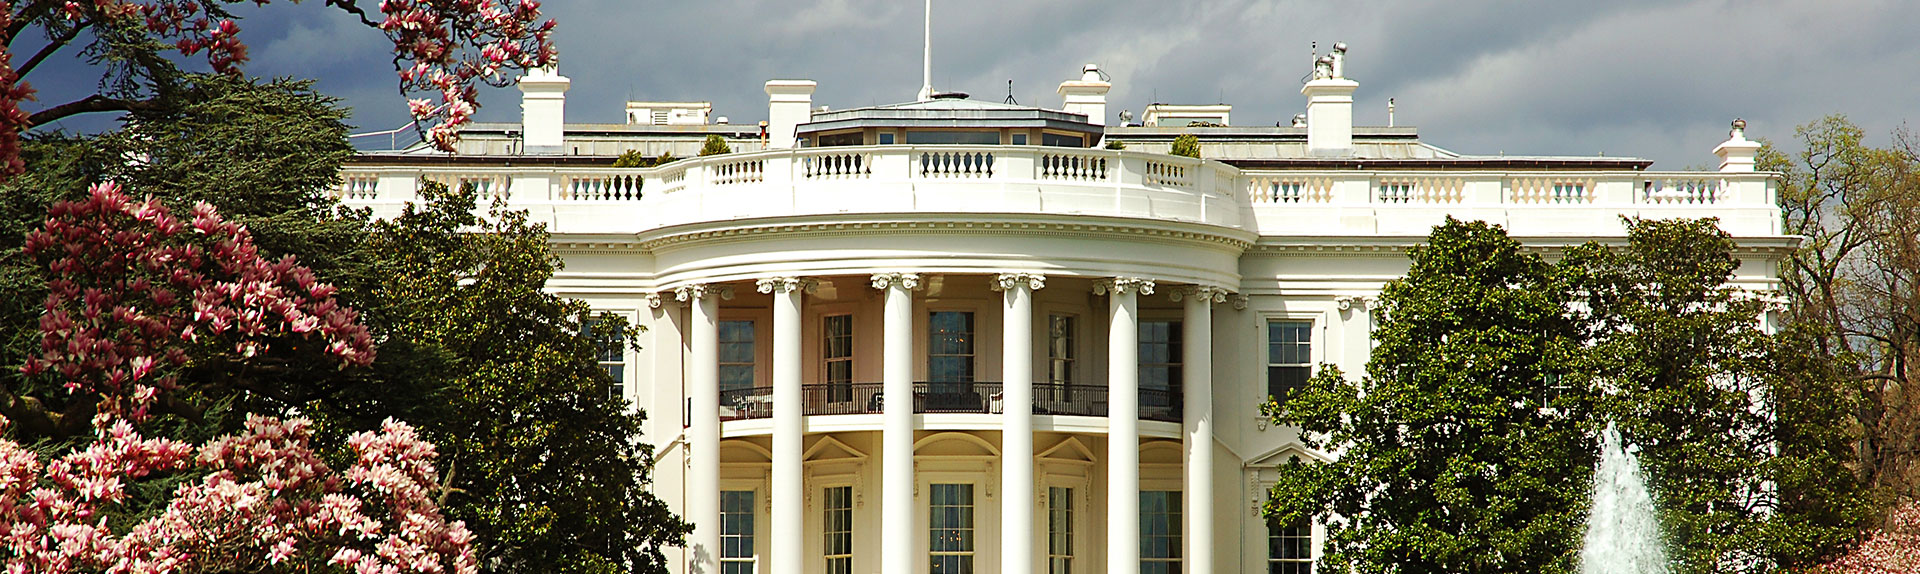 The White House th in Washington, District of Columbia